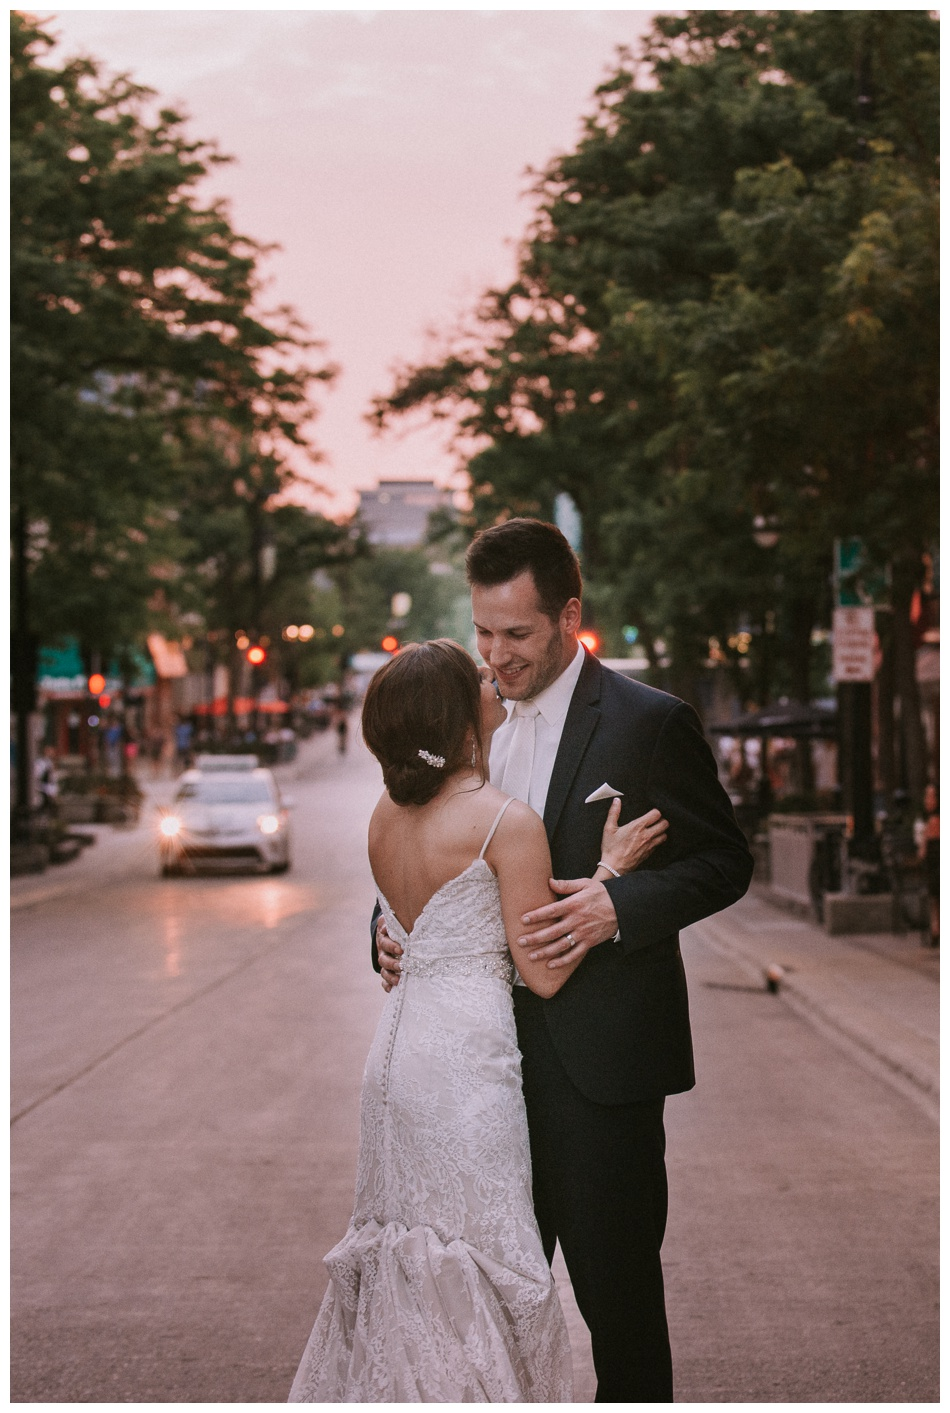 wedding couple dances in downtown madison state street at sunset on their wedding day